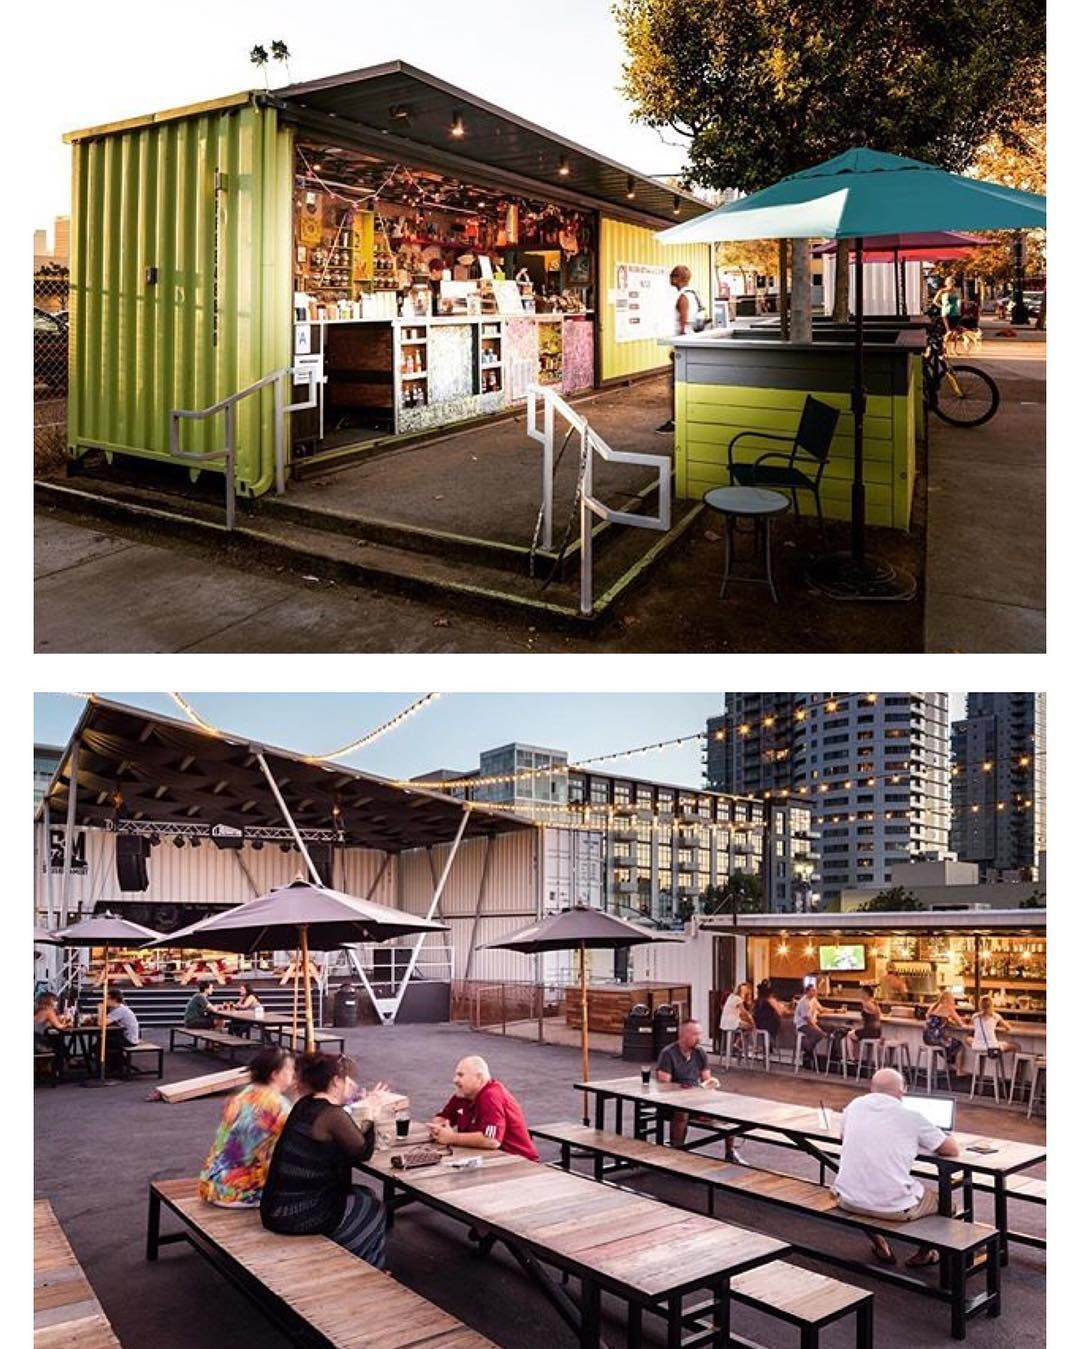 Pin de kris cerone en shipping container homes pinterest for Village craft container home